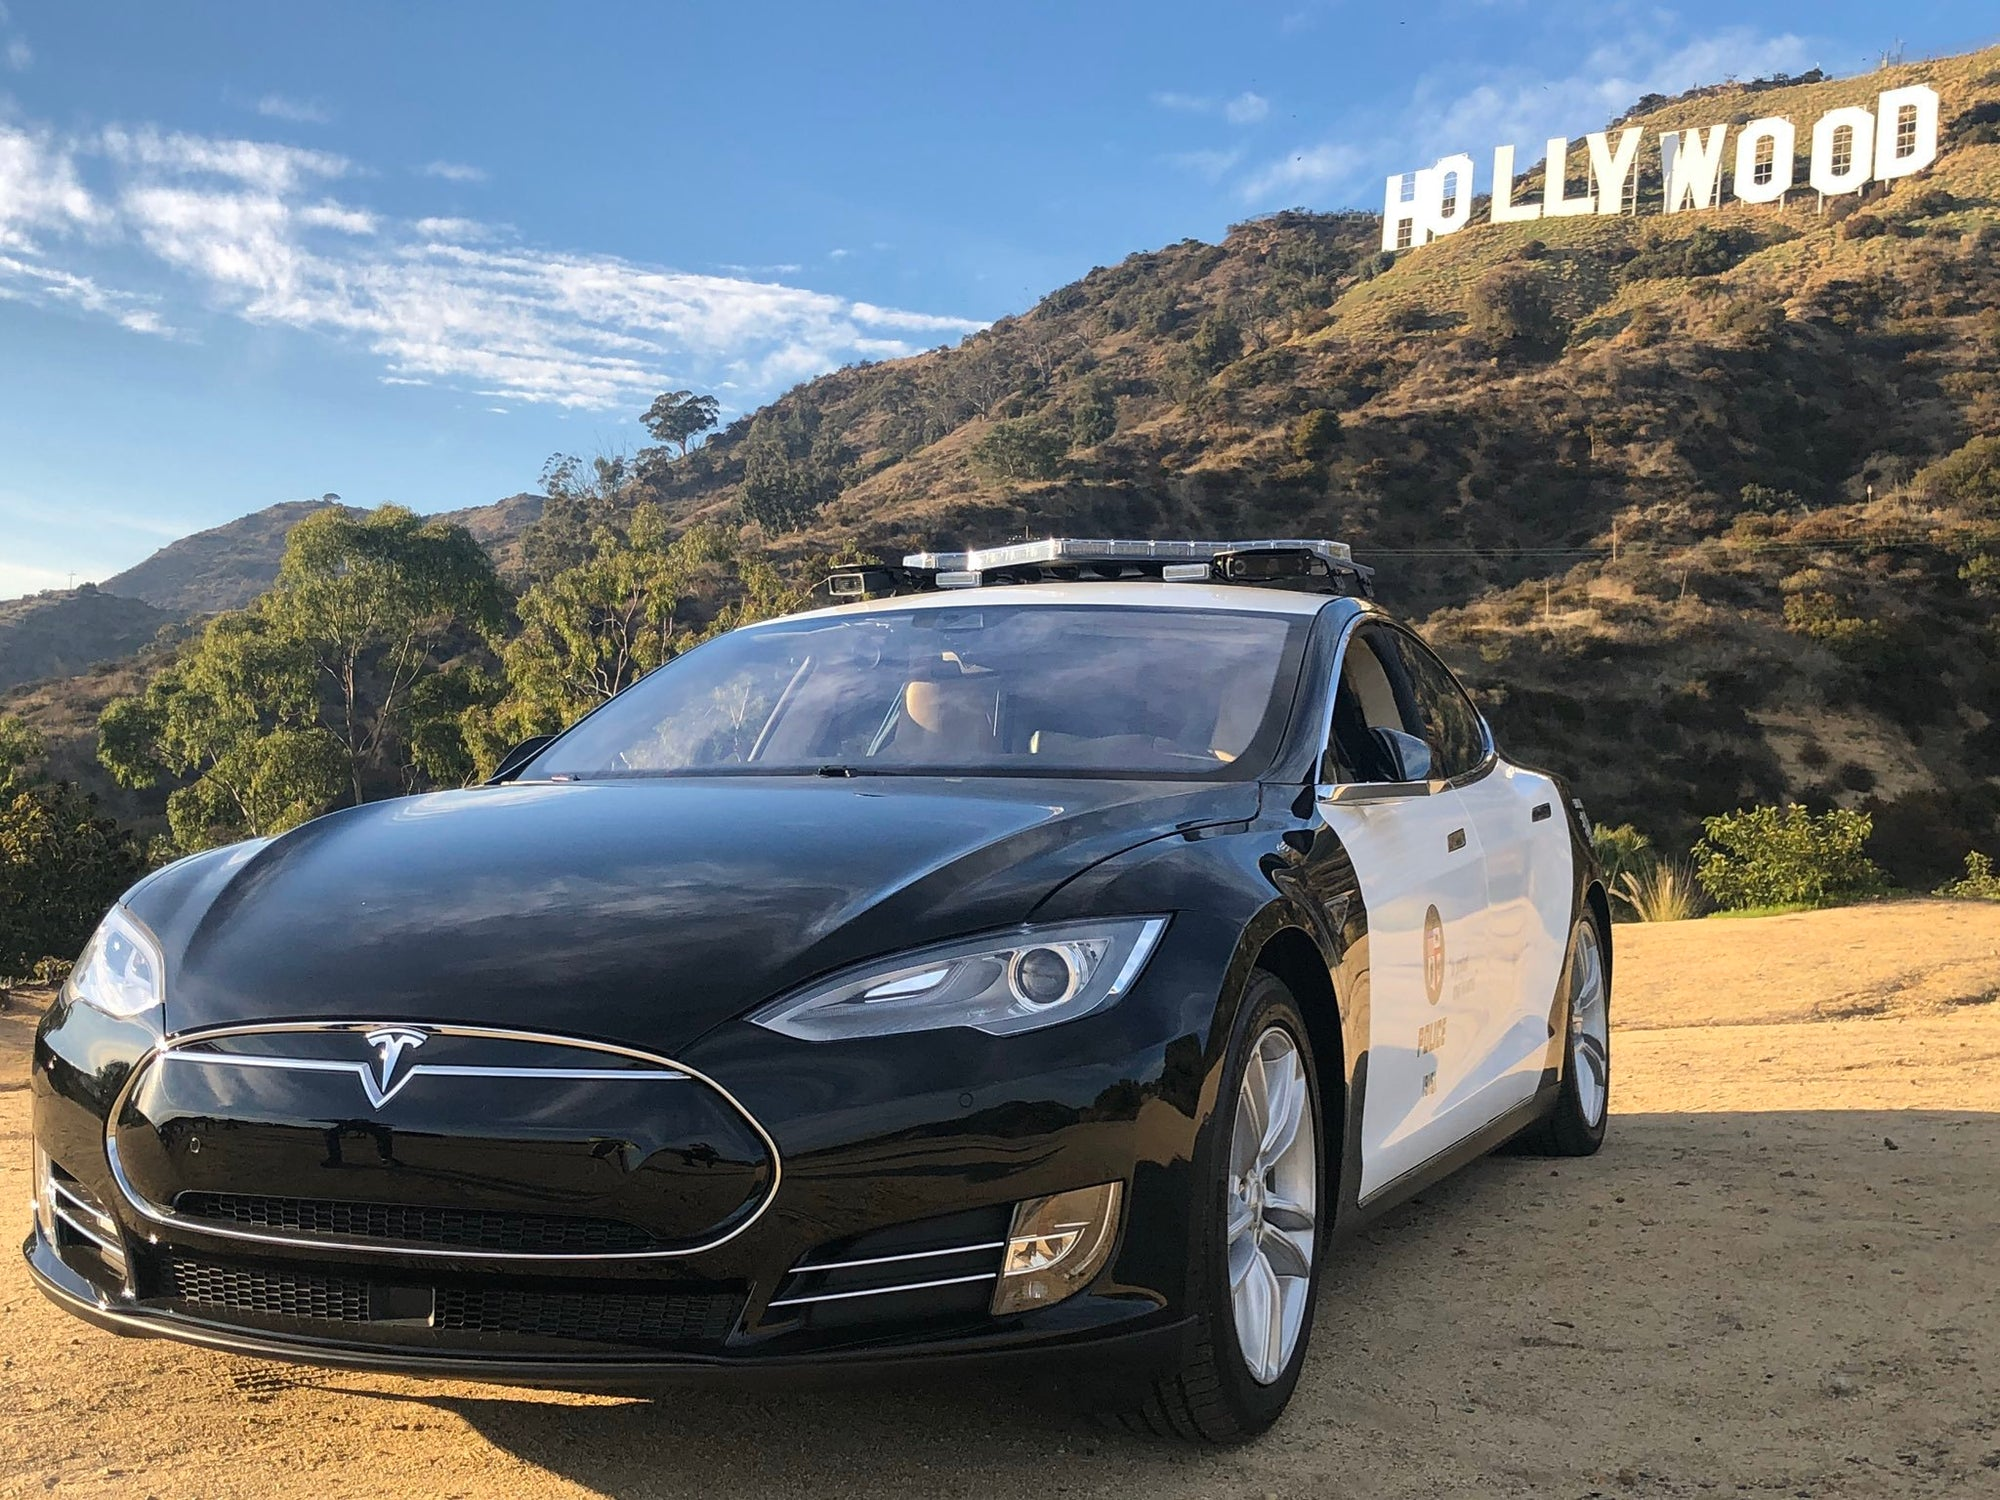 LAPD Hollywood Division tests out Tesla patrol car